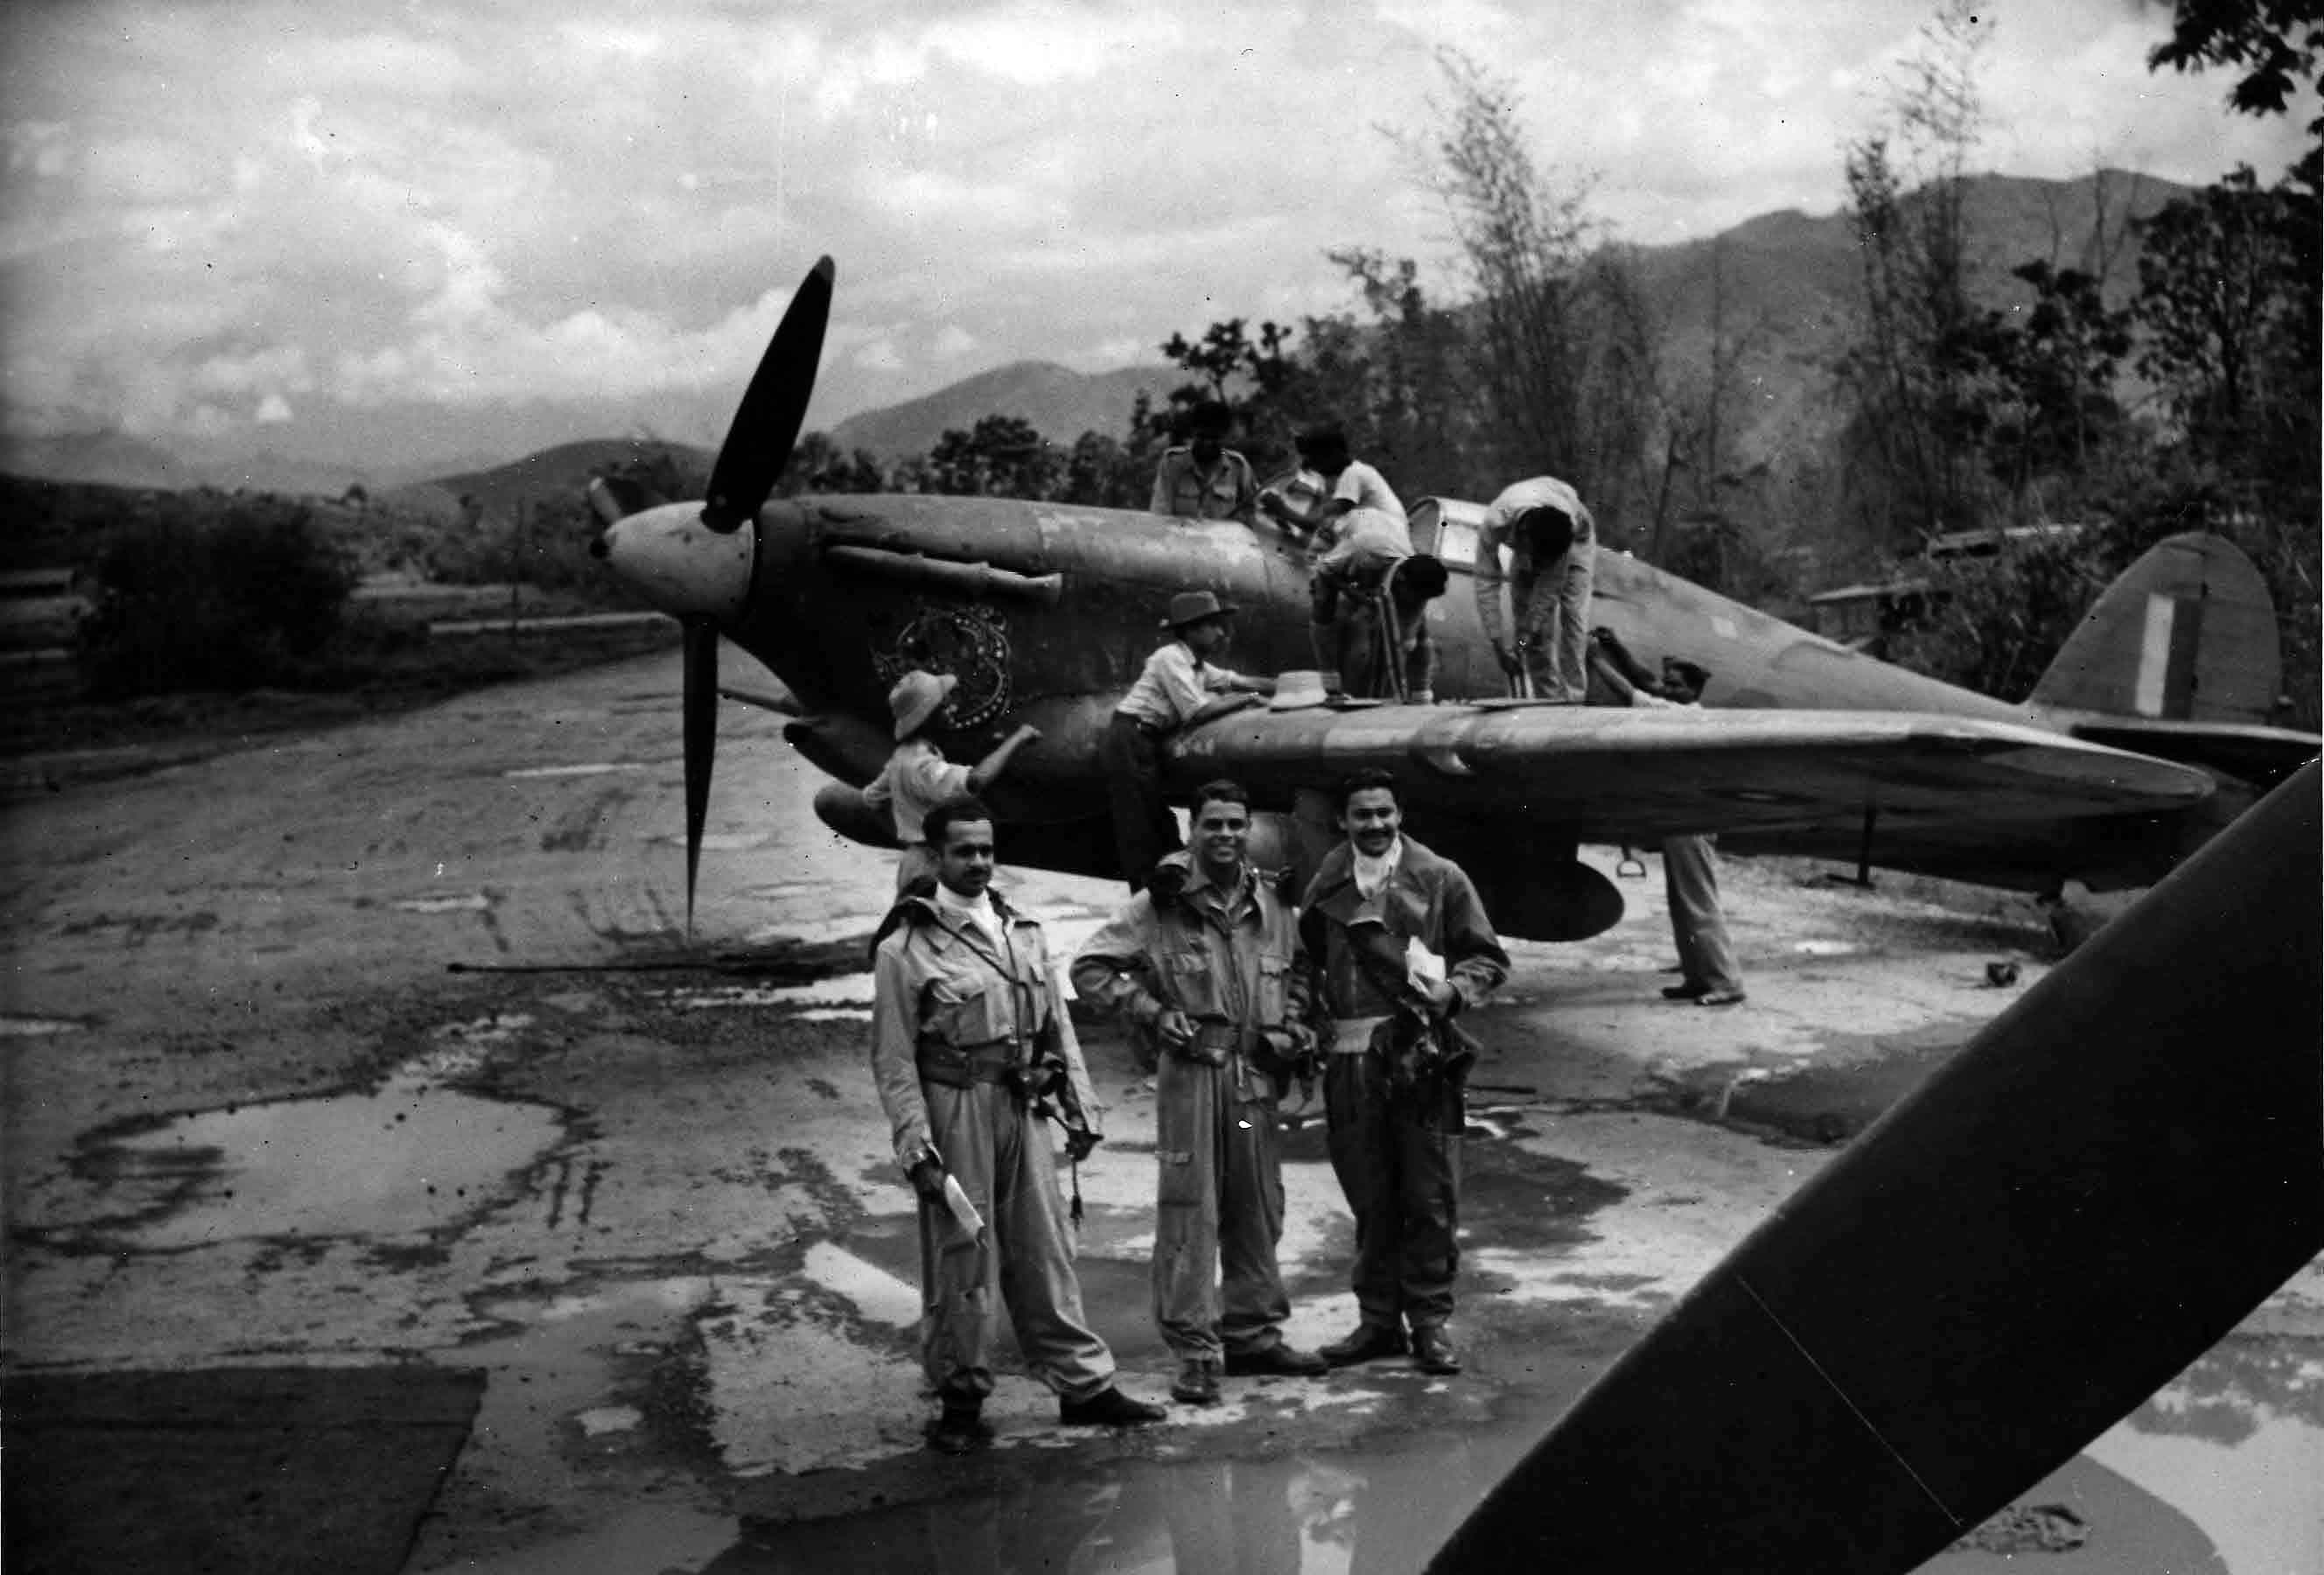 Indian Air Force Pilots standing in front of a Hawker Hurricane, c.1944